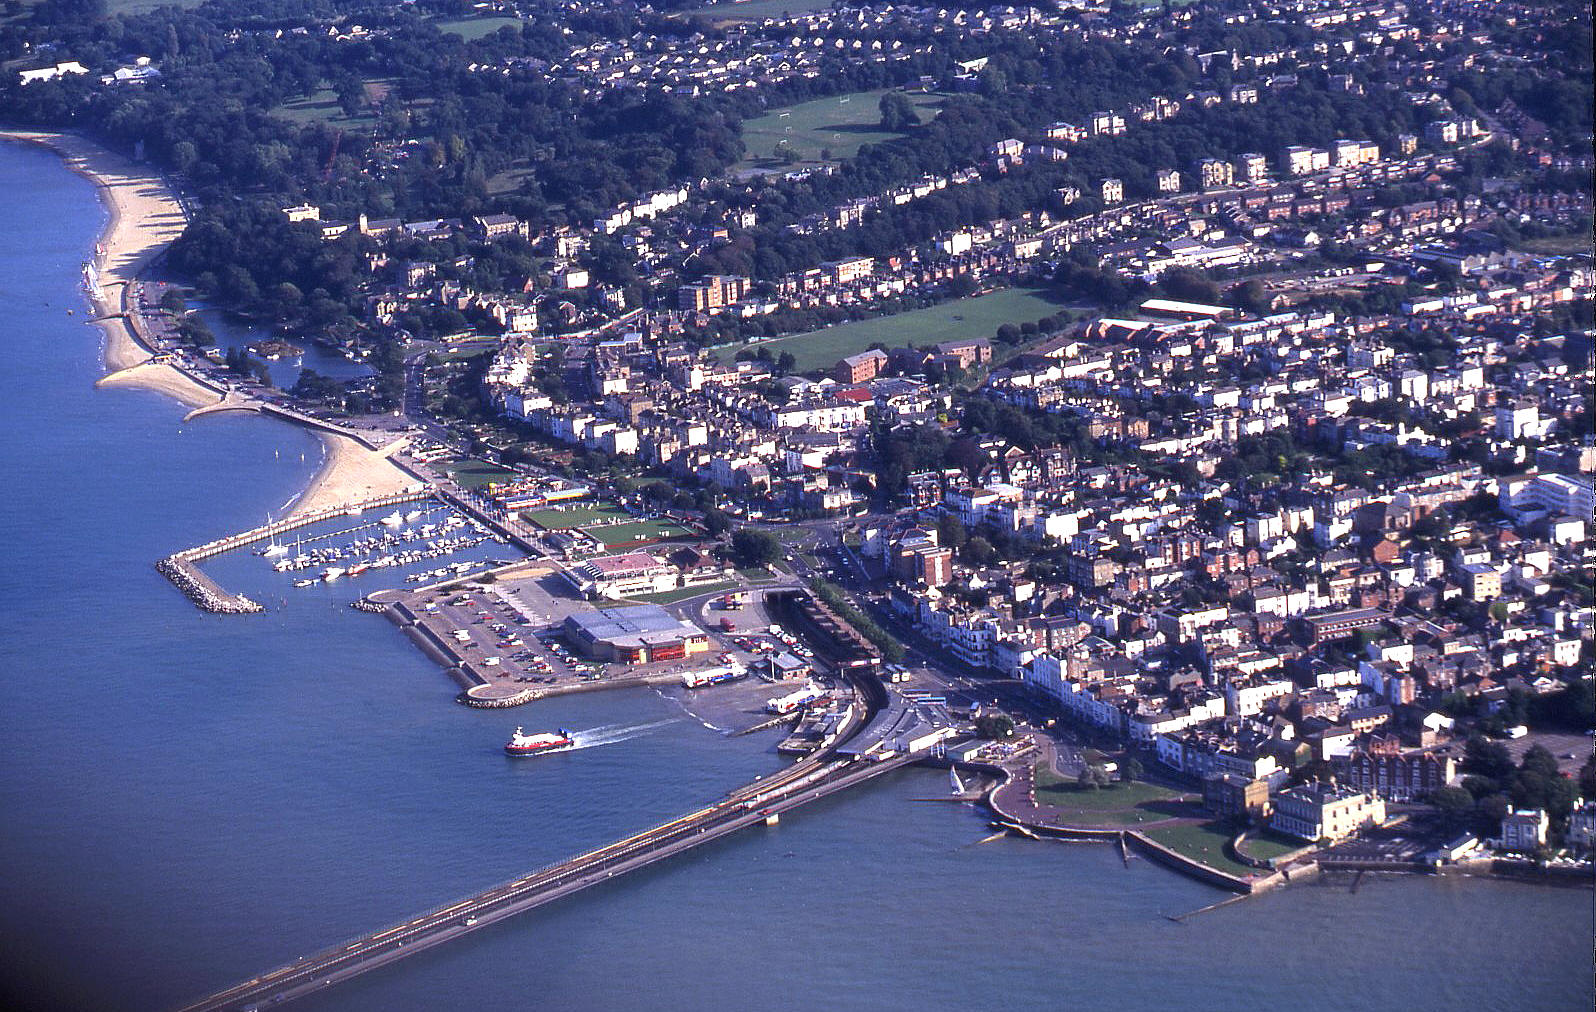 Ryde, Isle of Wight, in September 2000